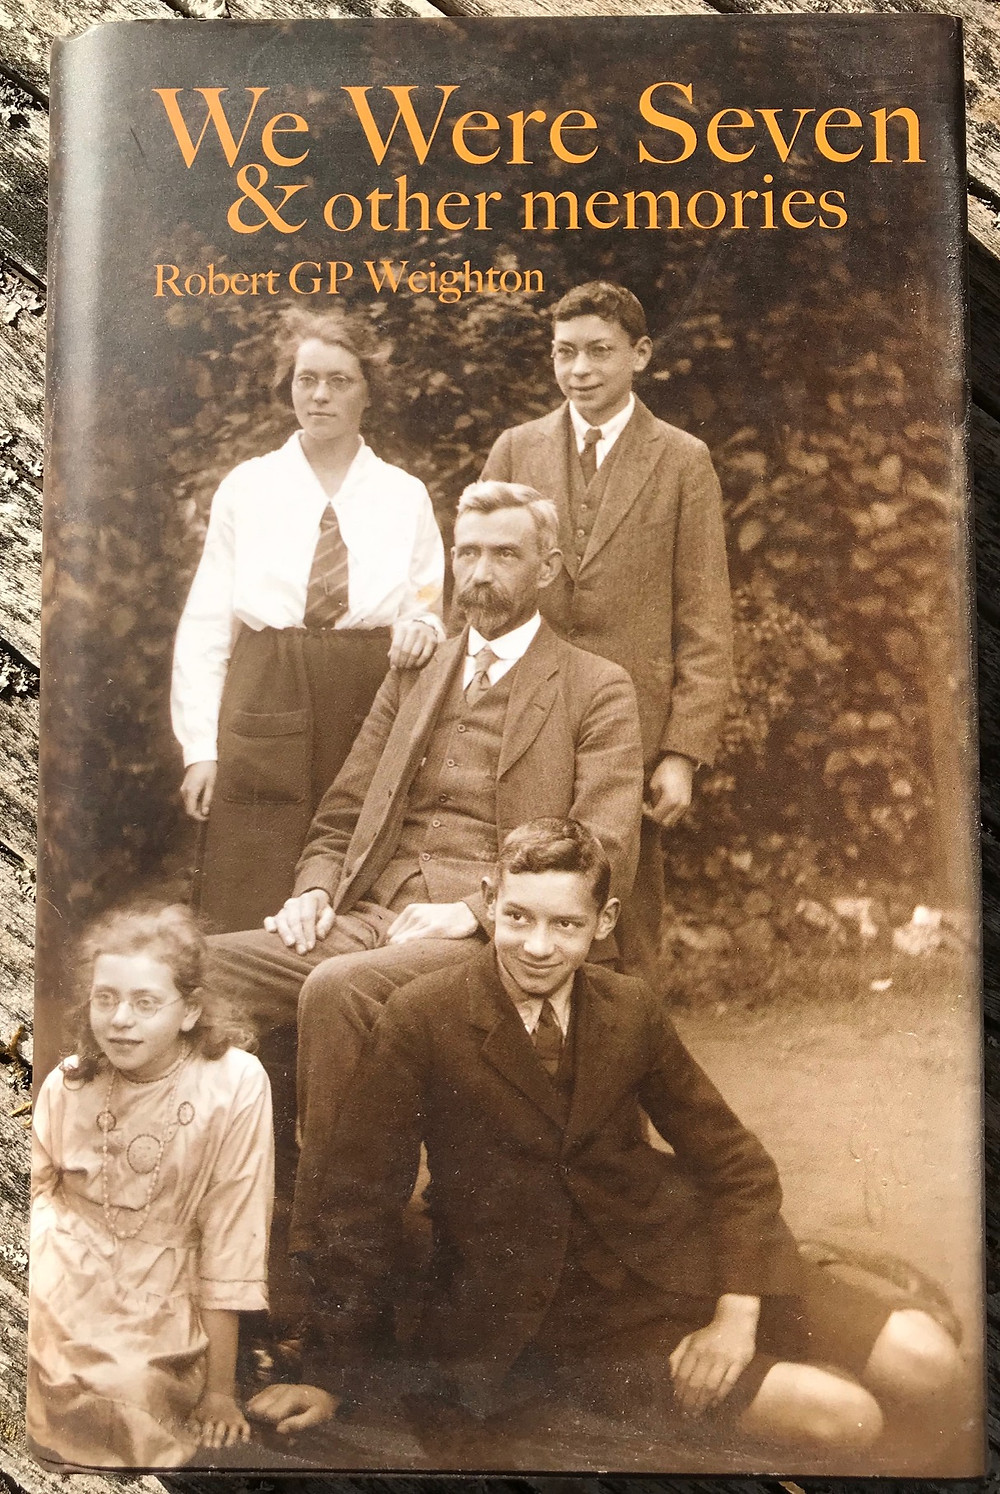 Bob is pictured with his family on the top right of the book cover of his memoirs